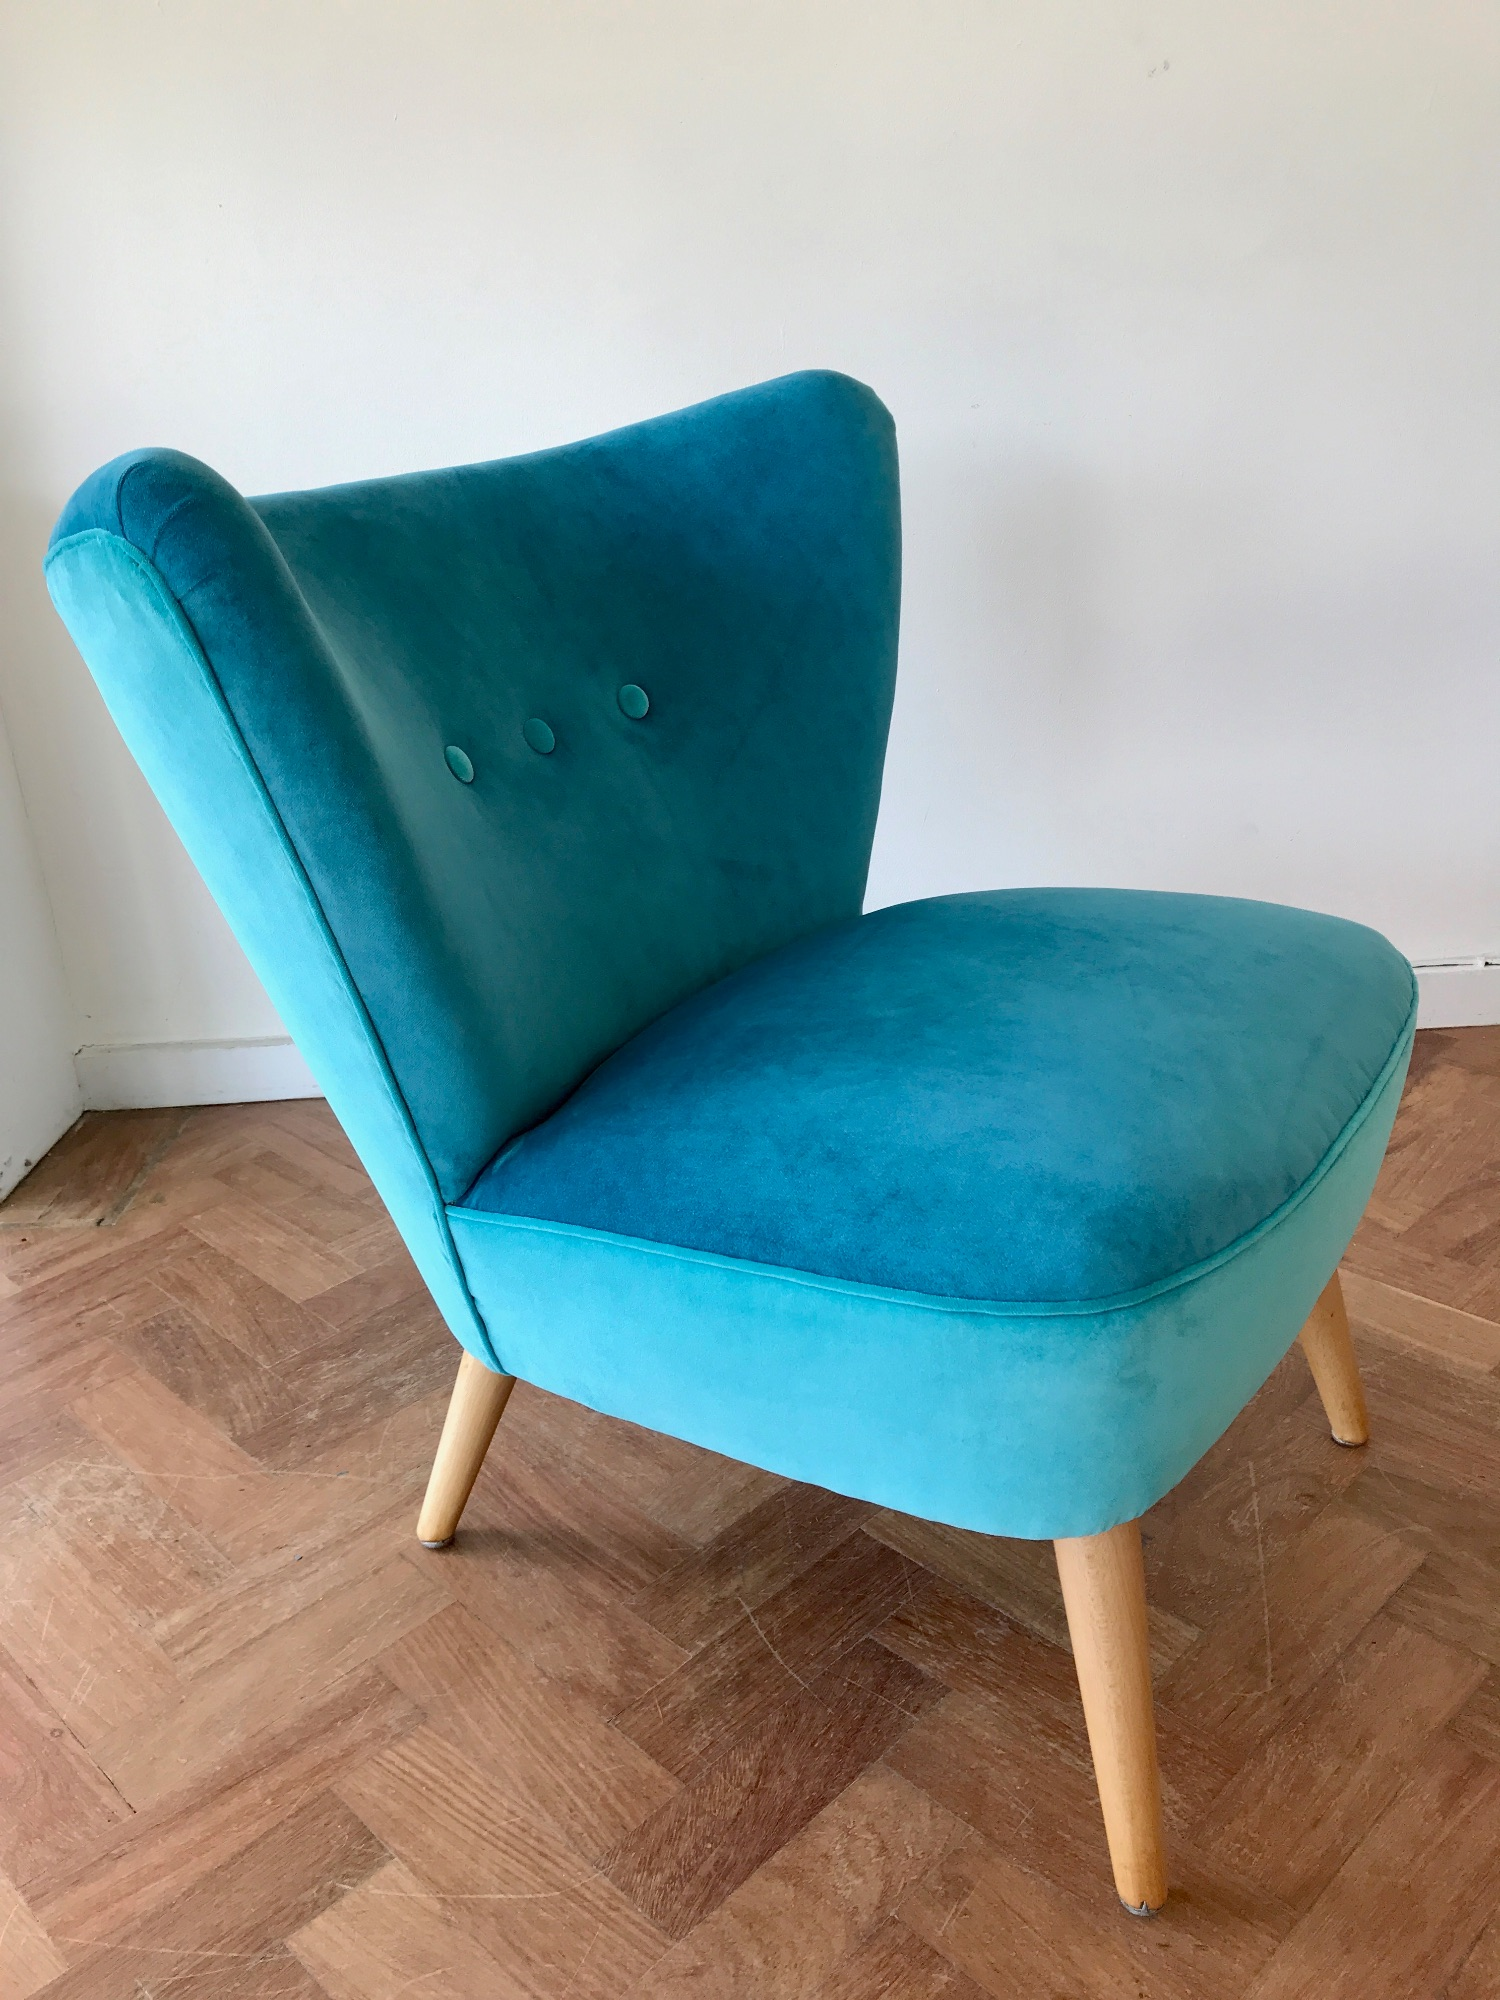 1950's cocktail chair by Spring Upholstery Brighton in turquoise Omega velvet by Linwood